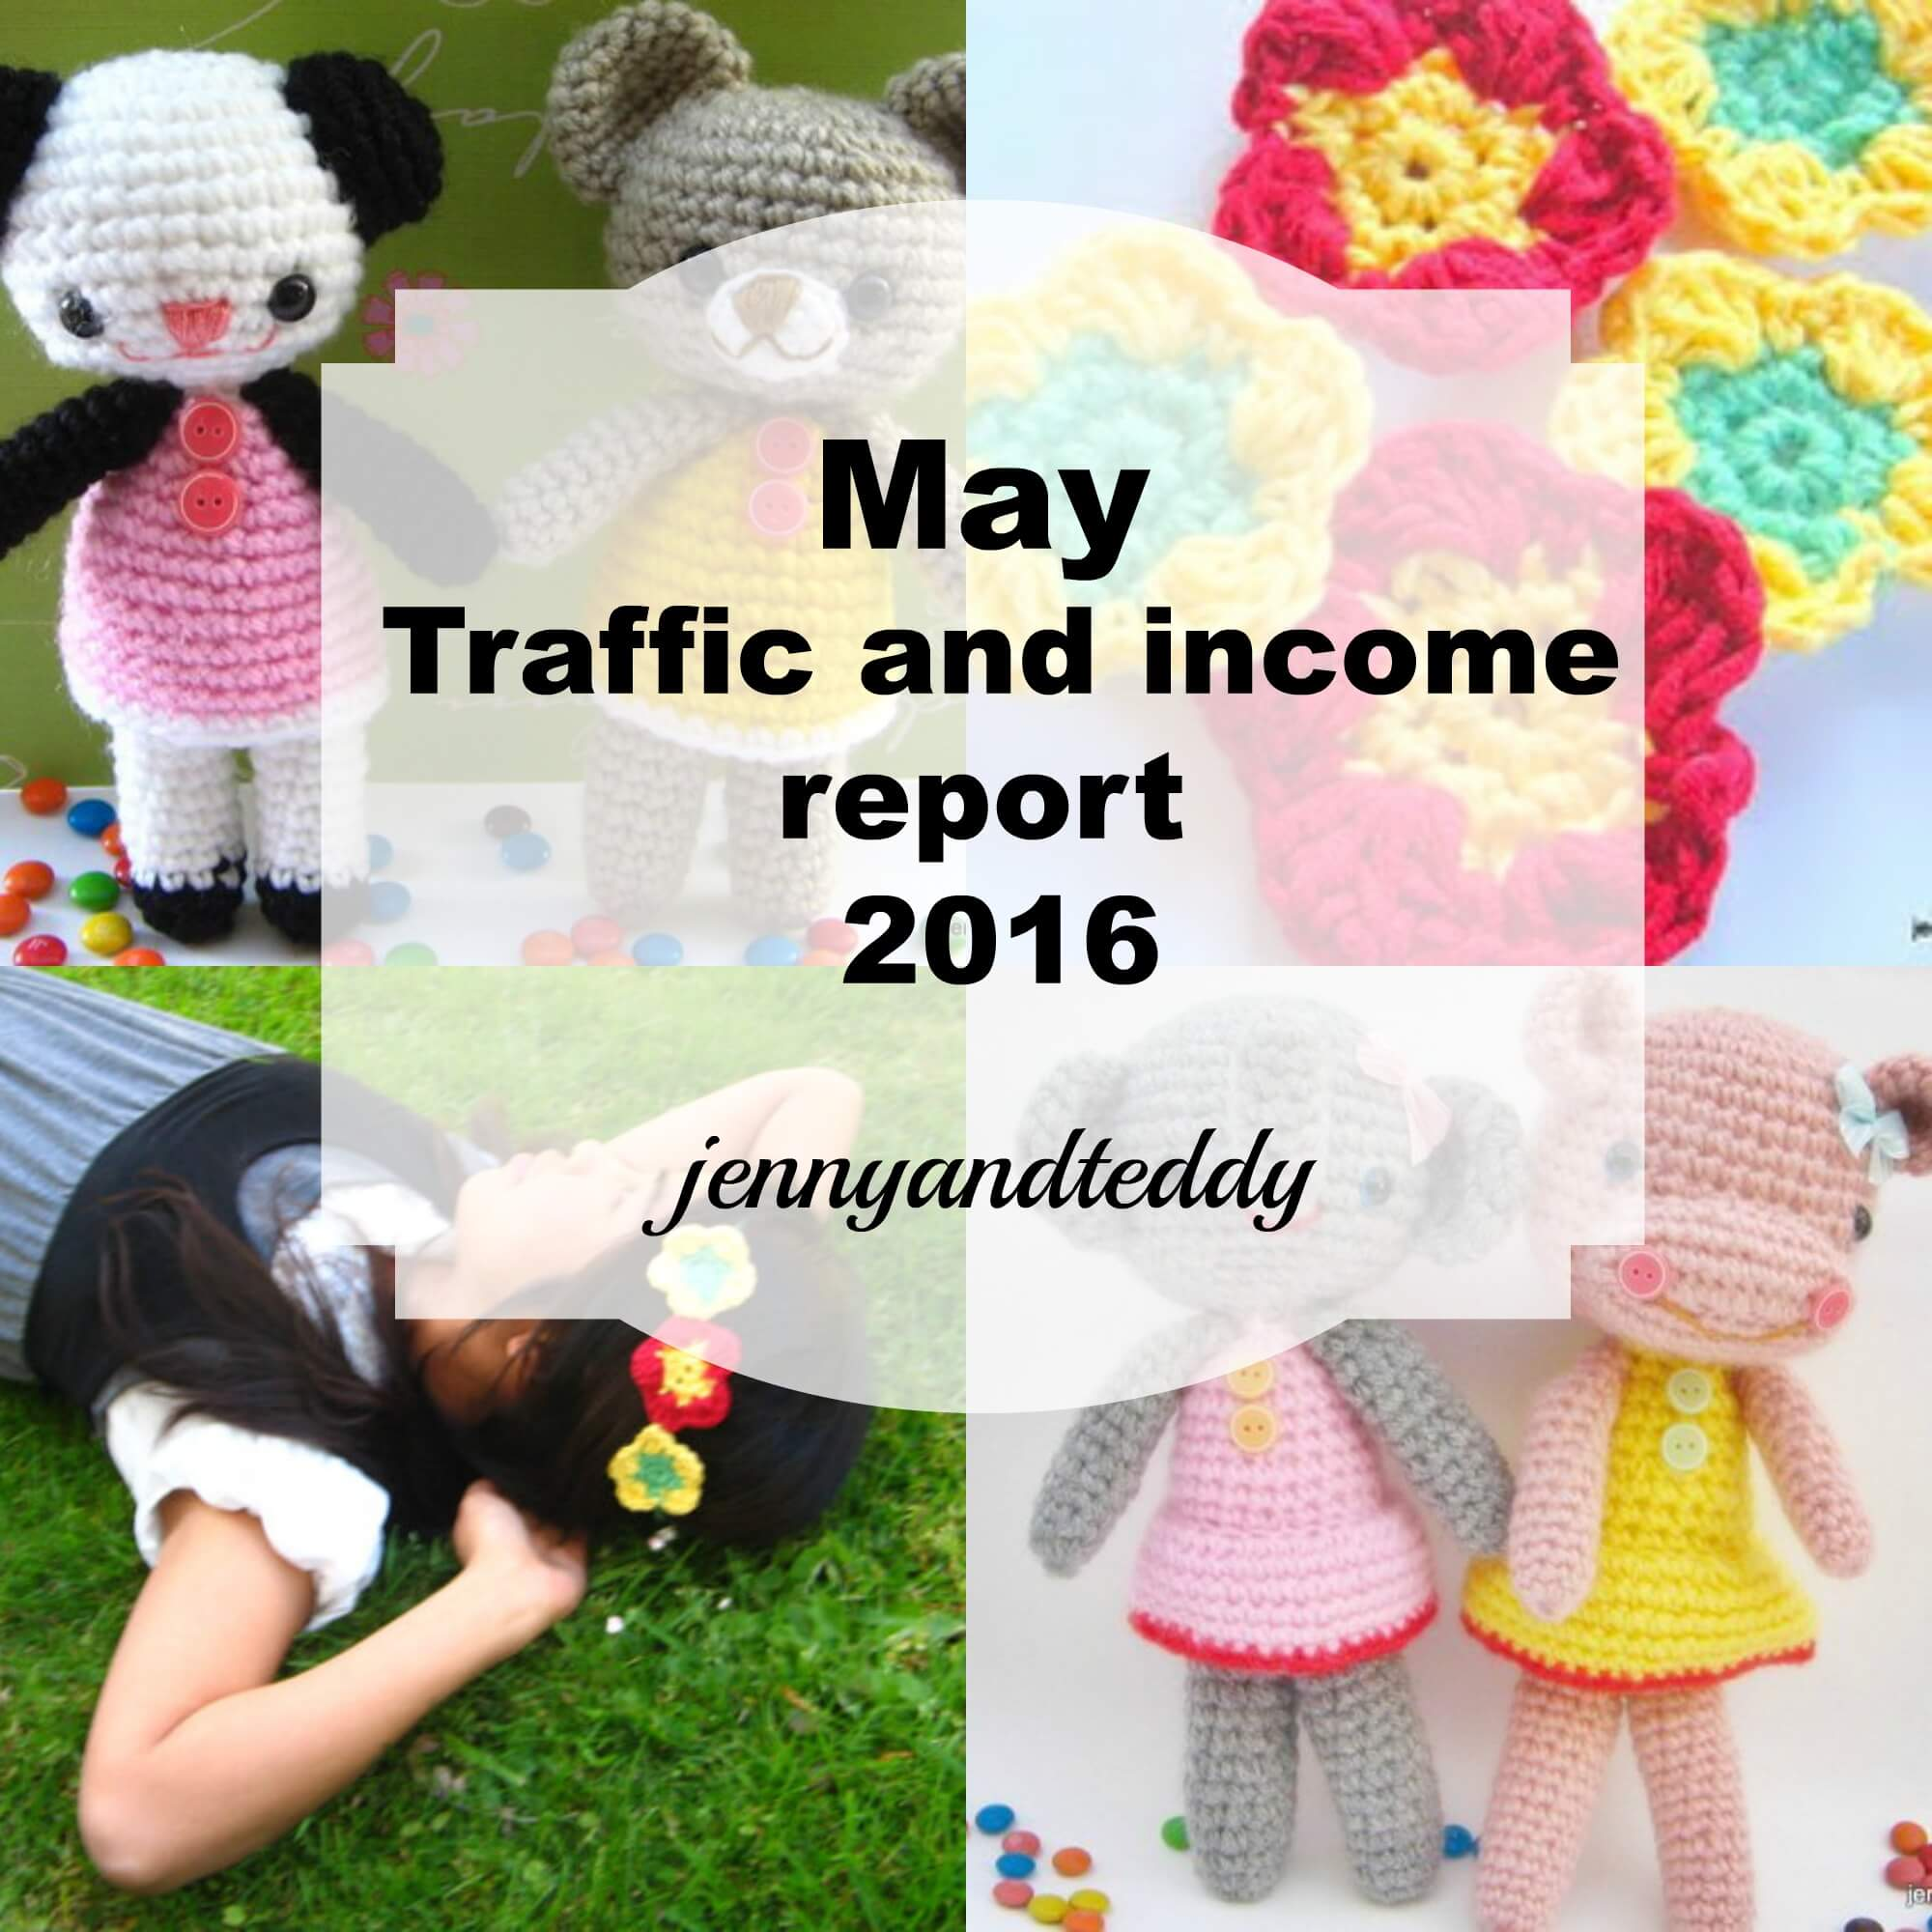 may traffic and income report 2016 by jennyandteddy